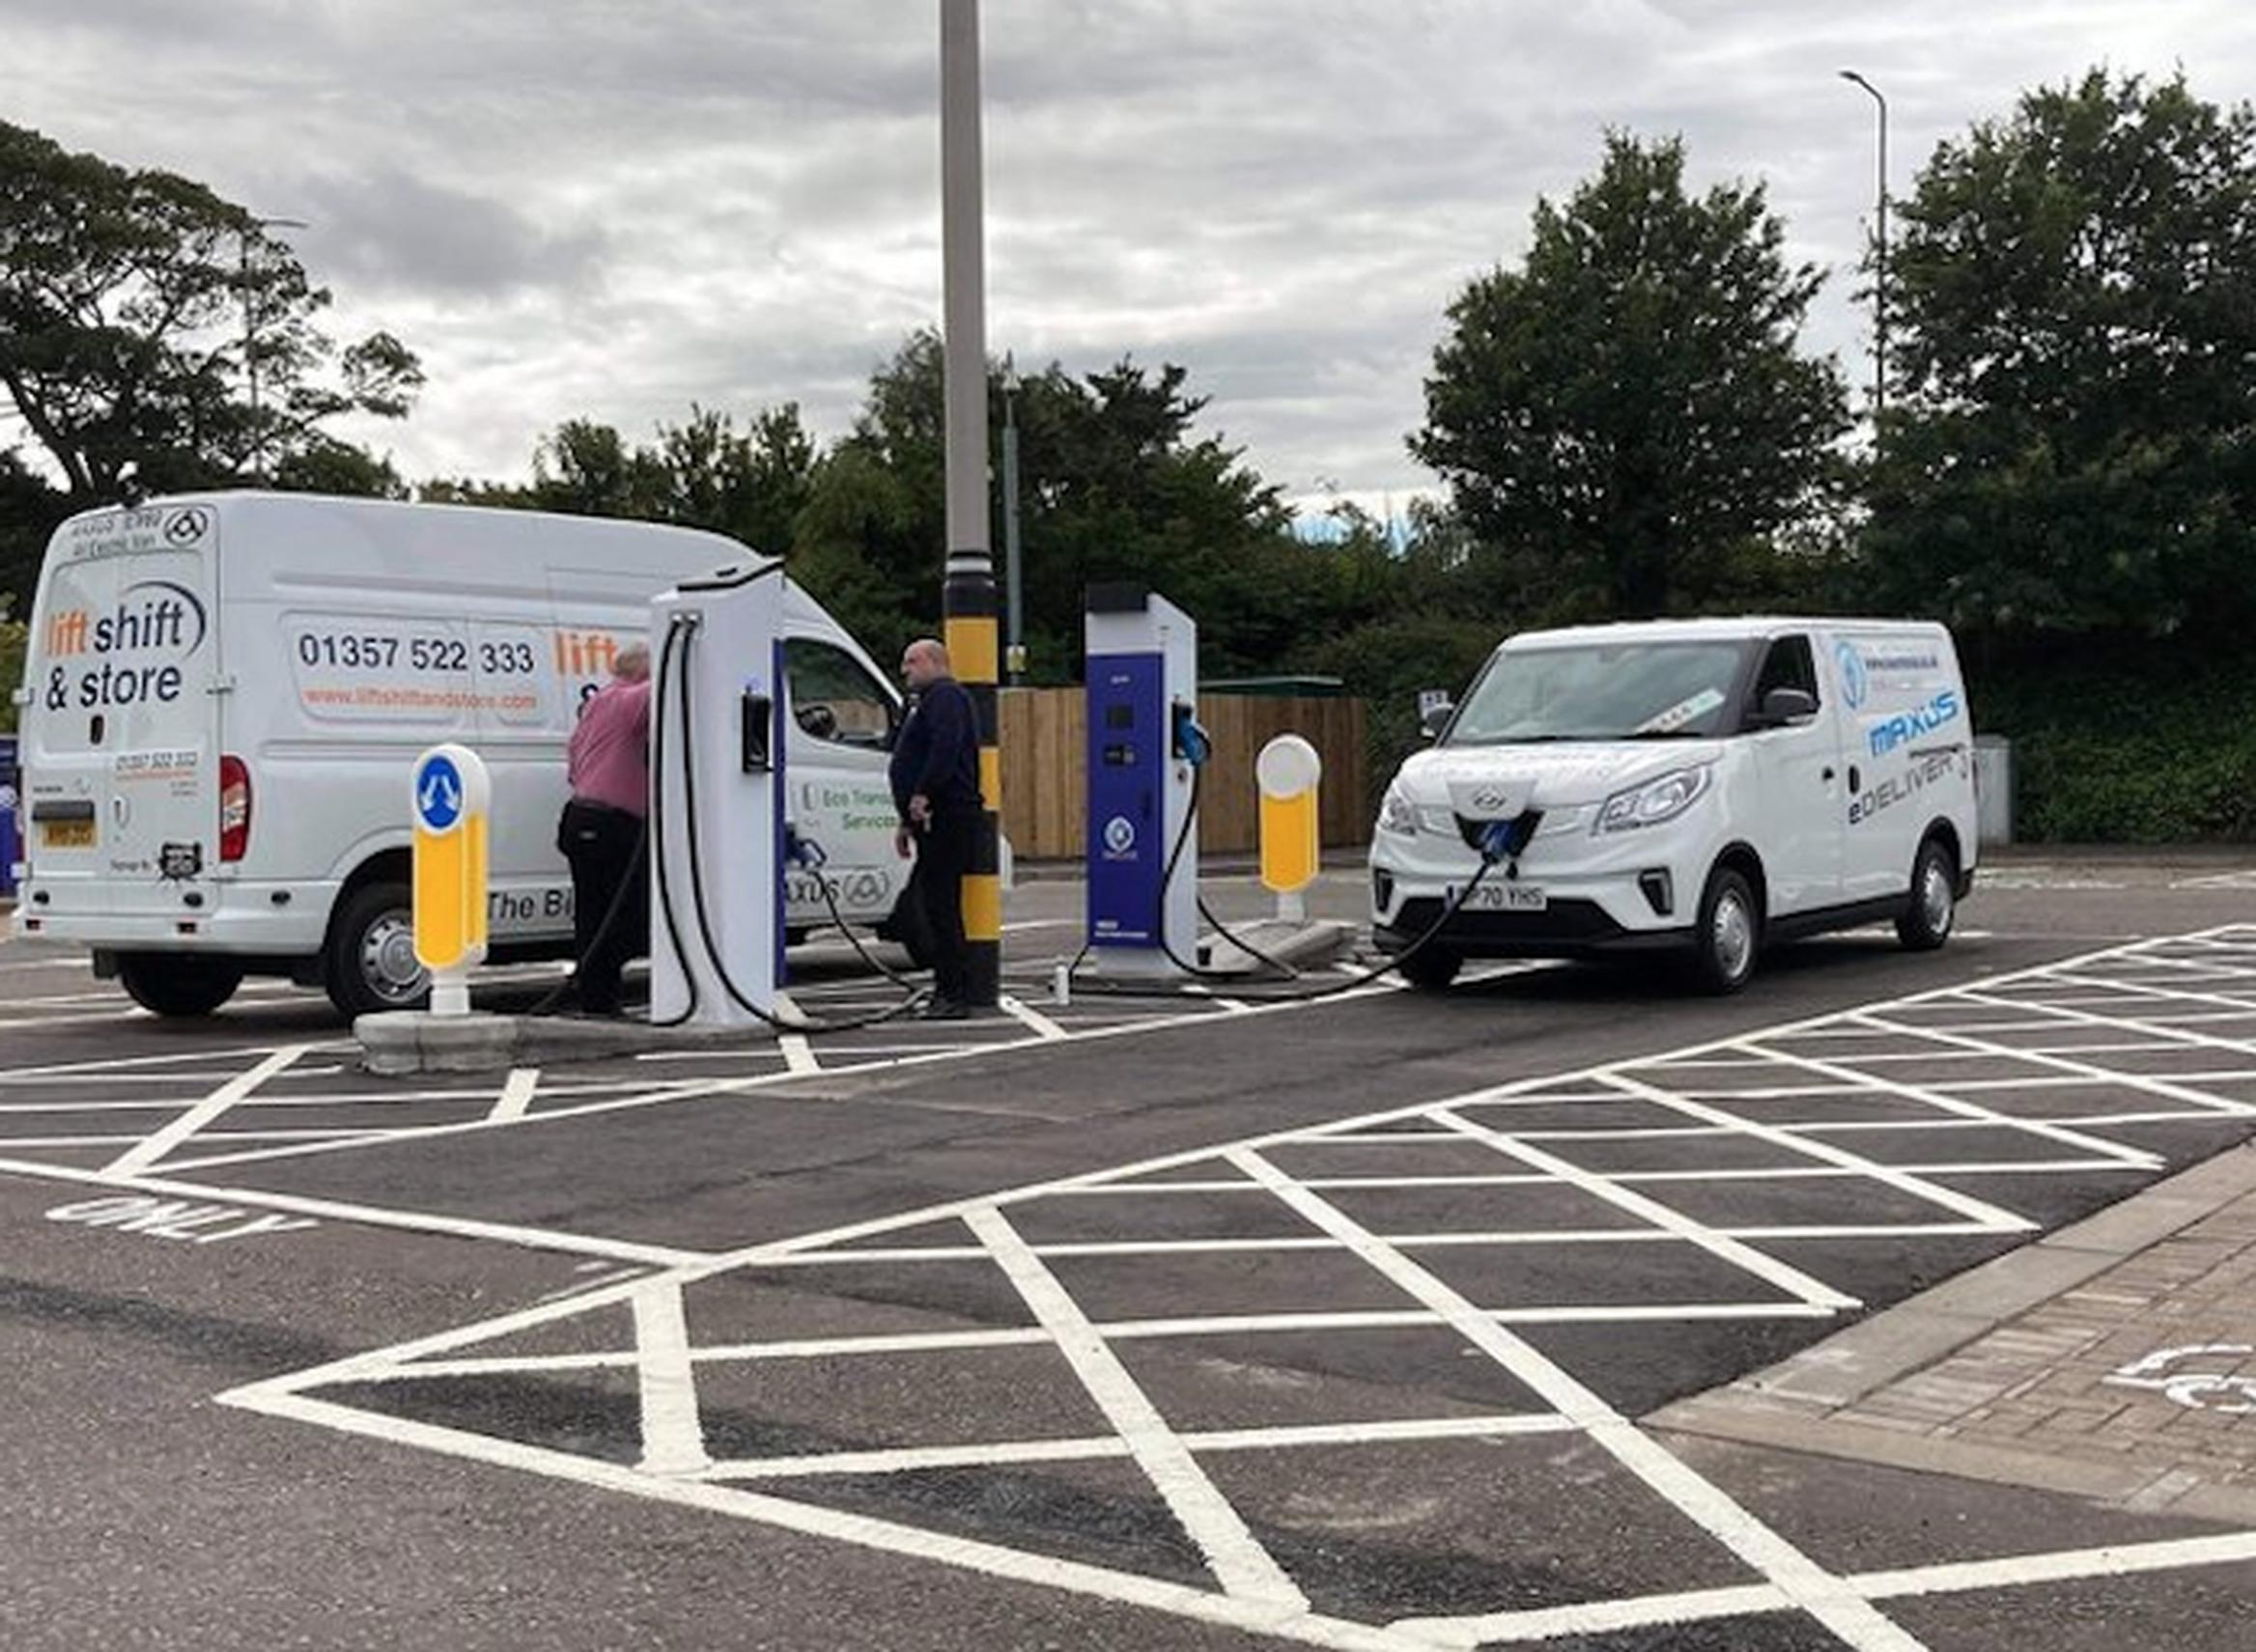 The Wallyford Park & Choose hub features 18 charging stations